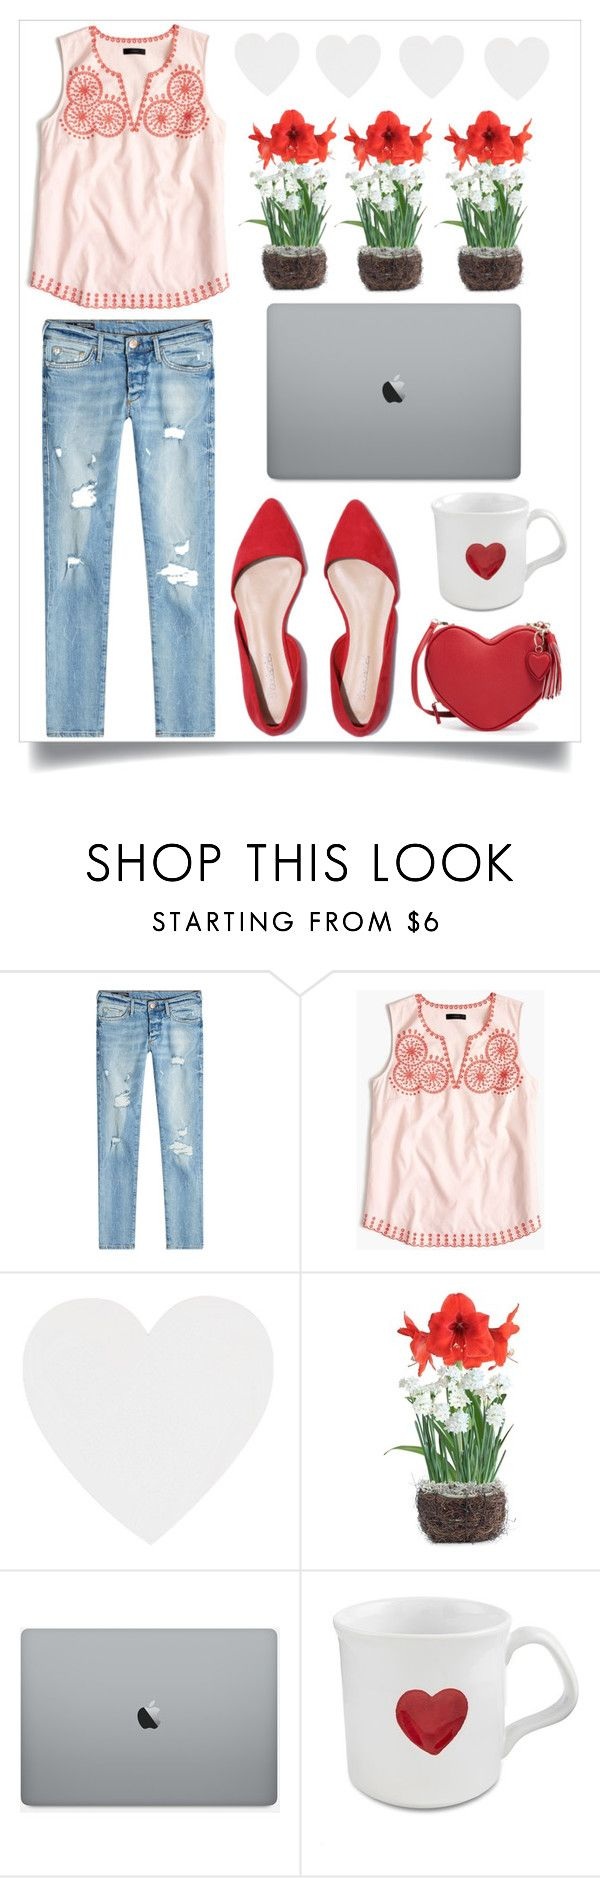 """#16"" by carolin-wm ❤ liked on Polyvore featuring True Religion, J.Crew and Williams-Sonoma"